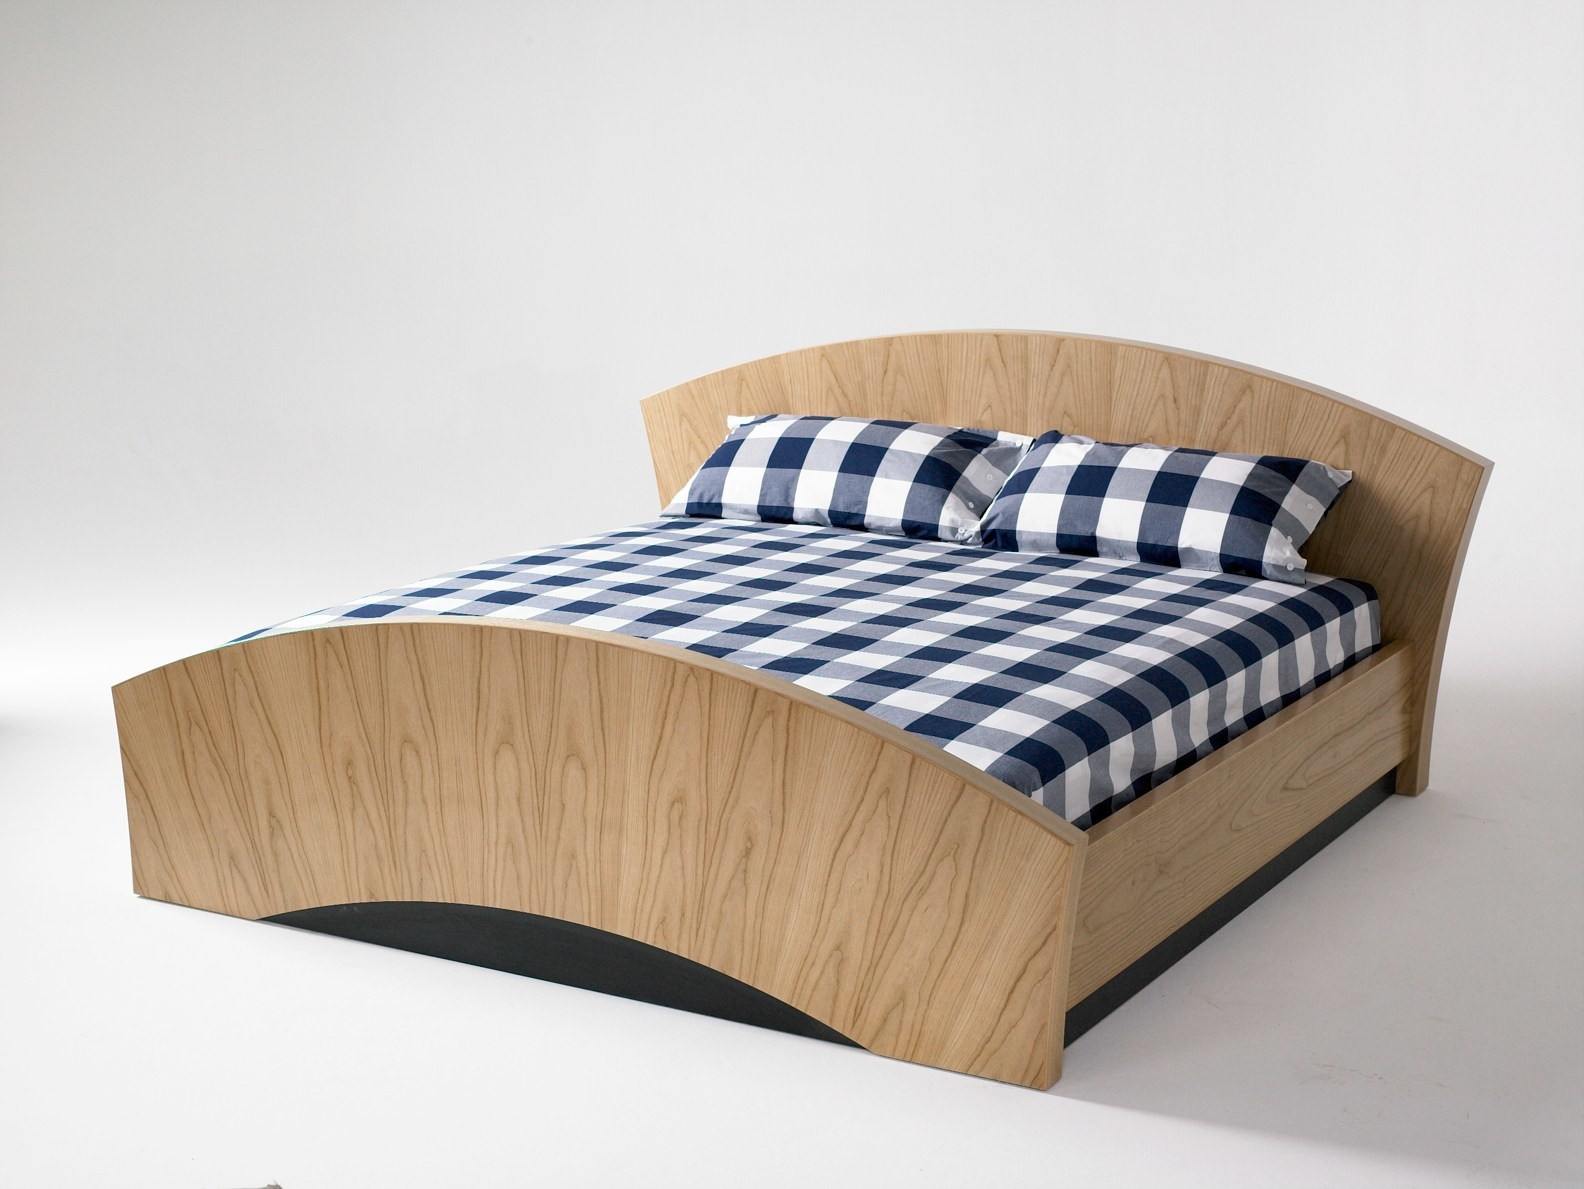 Bed designs 2012 4u wooden bed design - Design of bed ...